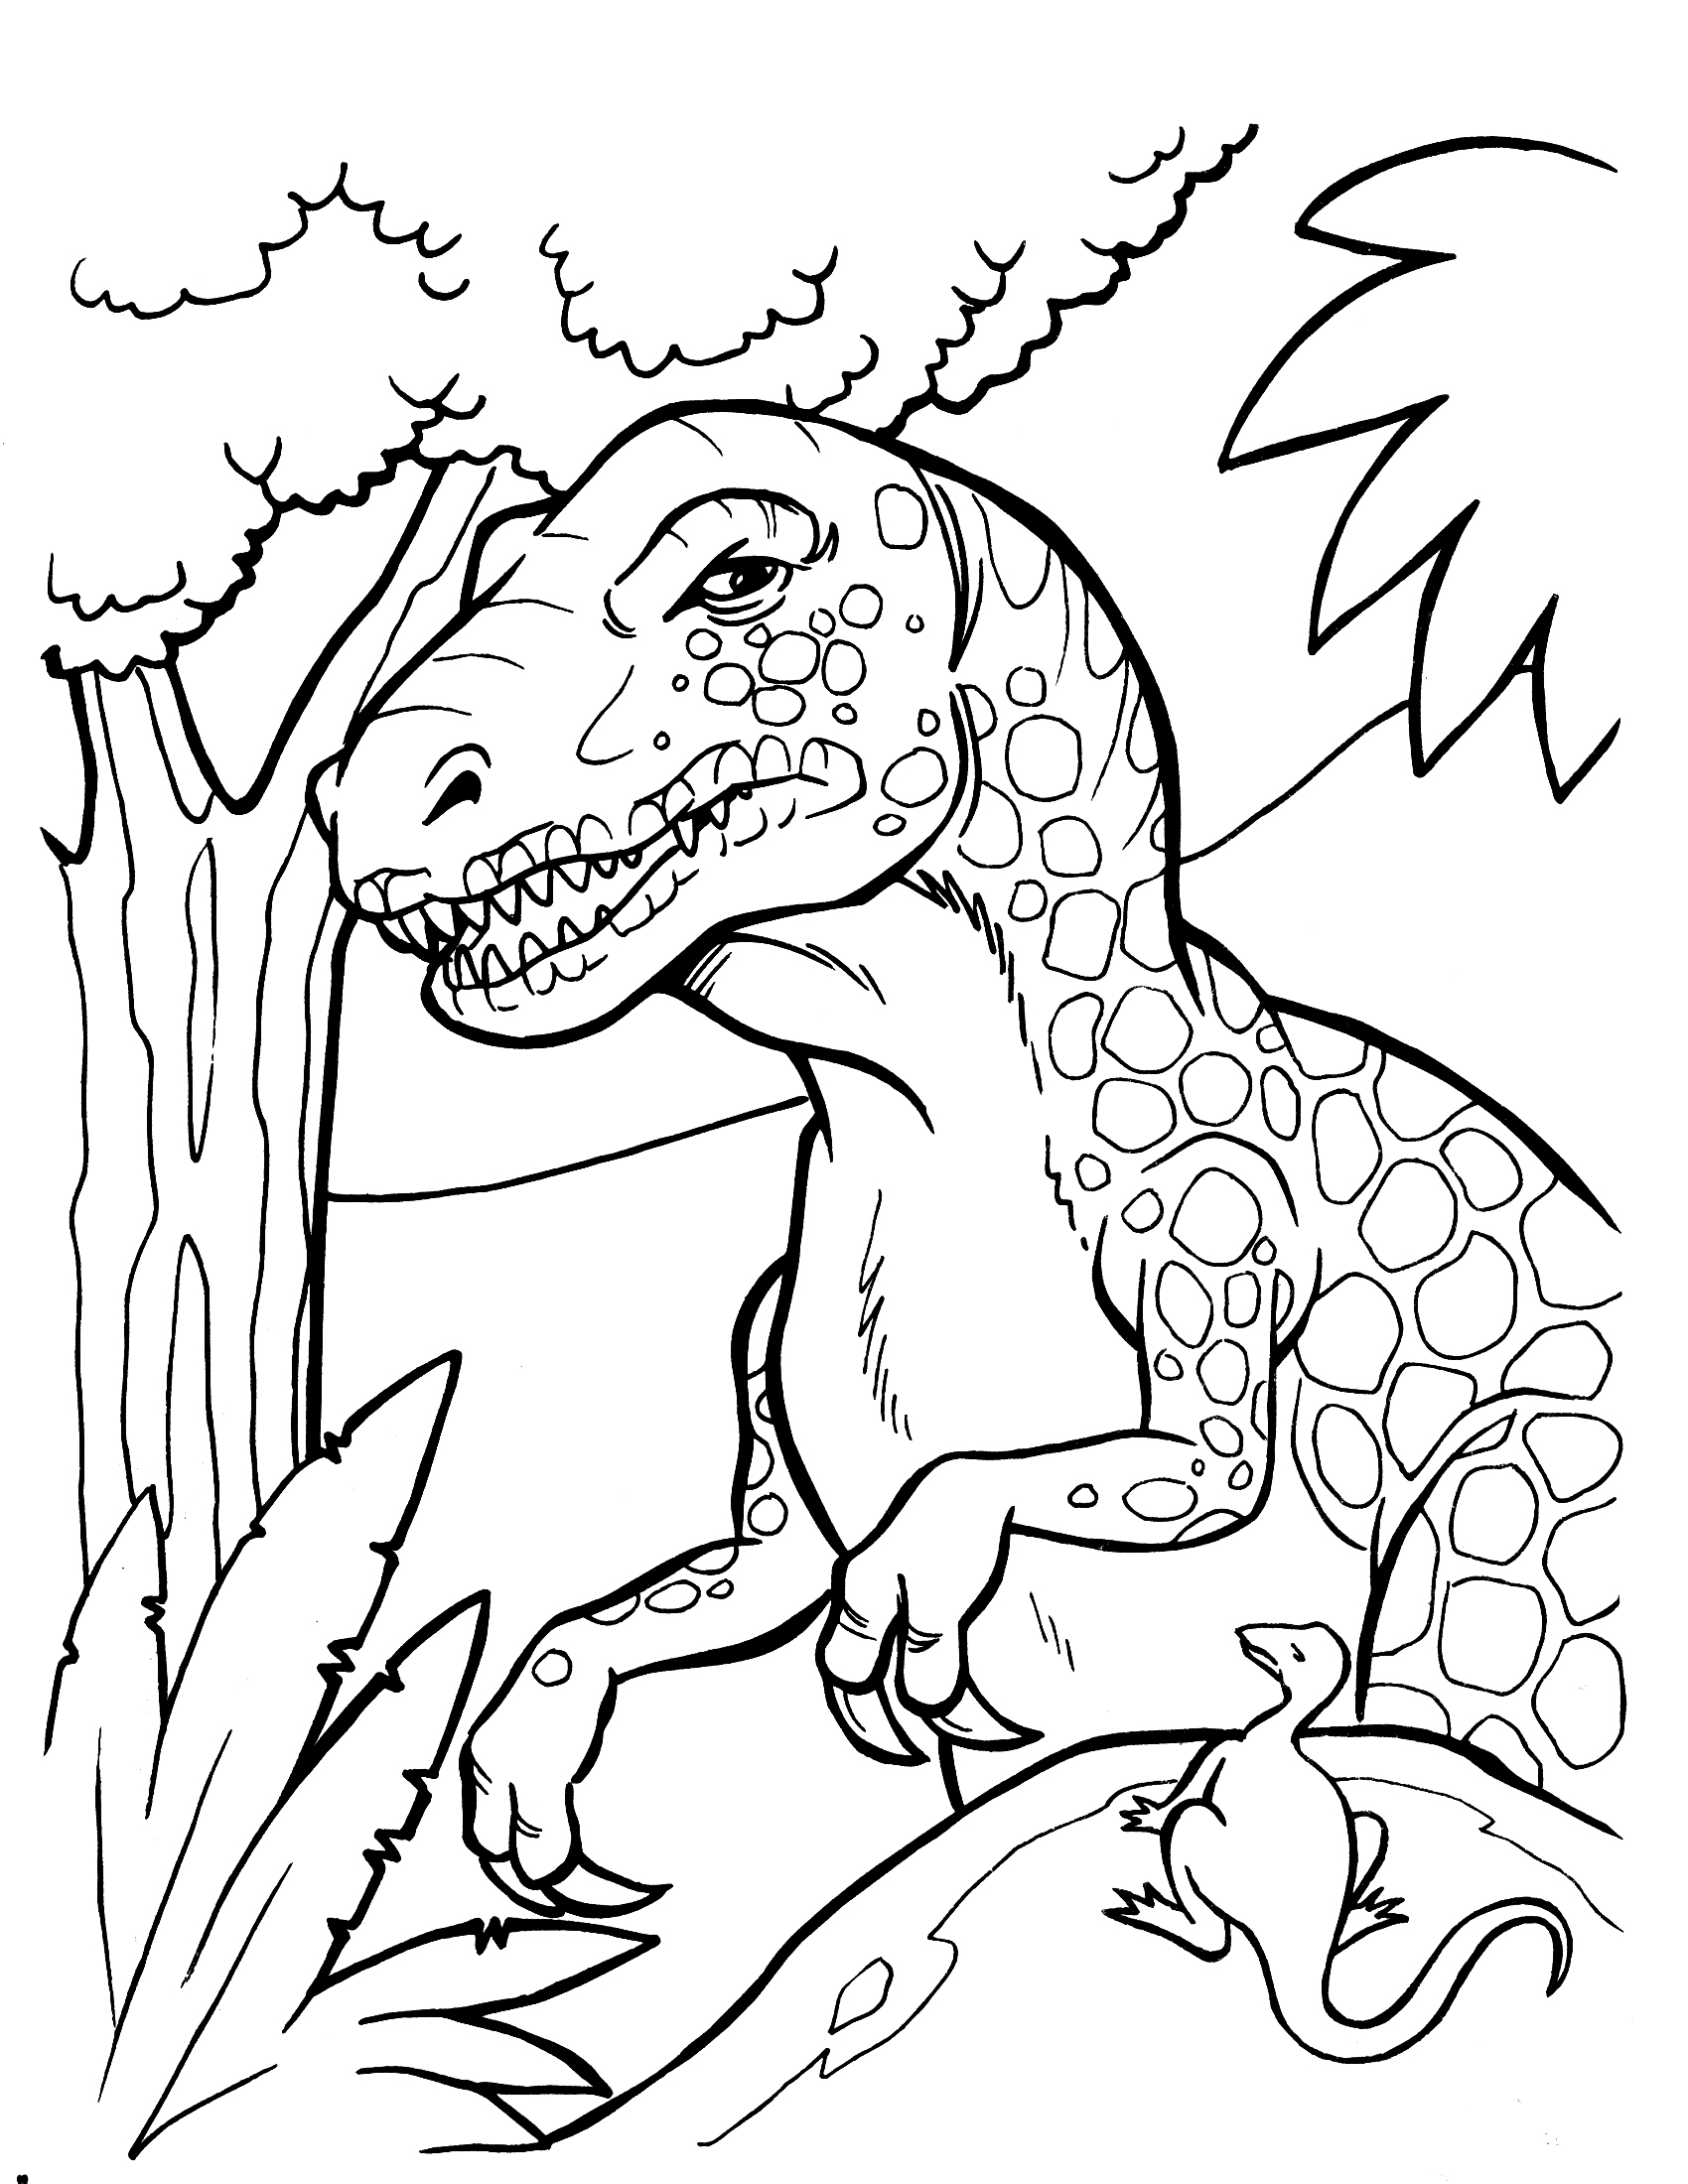 dinosaur print out coloring pages coloring town coloring print out pages dinosaur